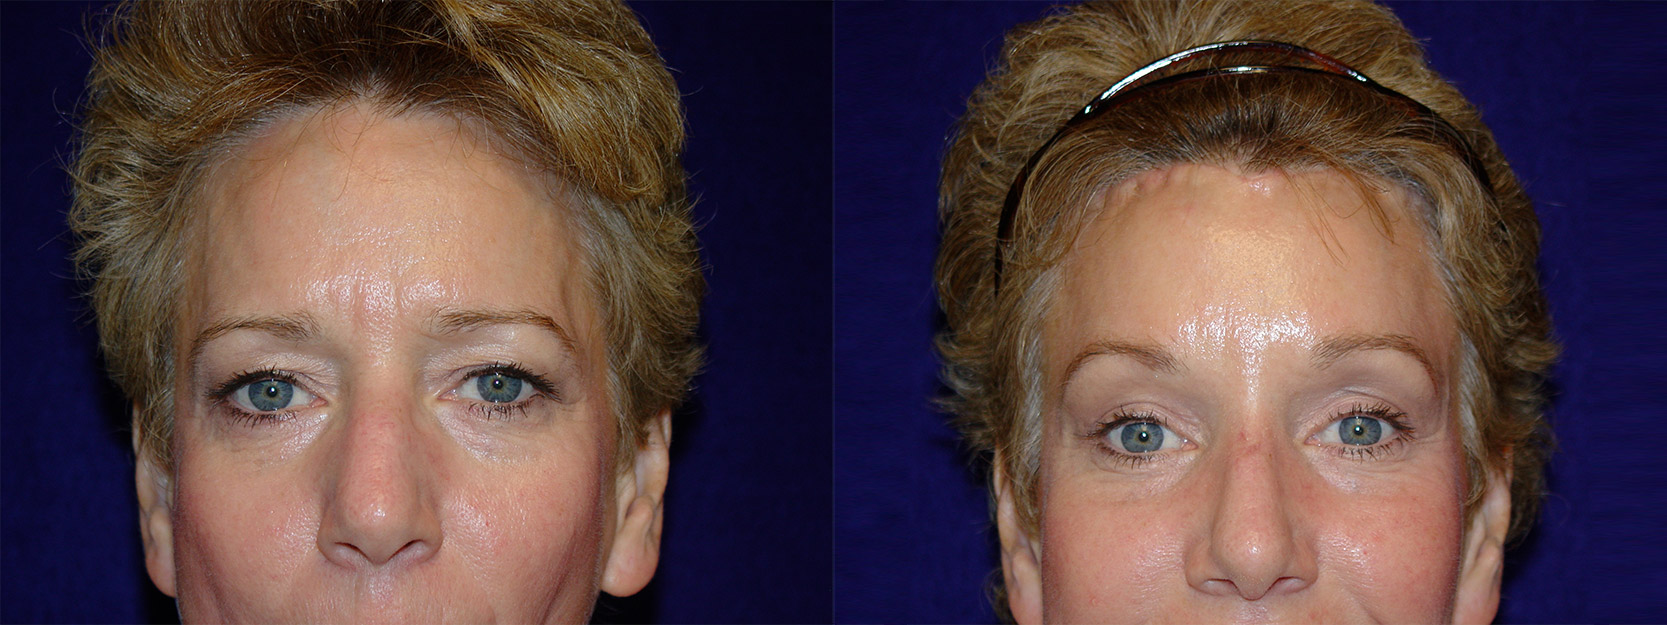 Frontal View - Browlift and Rhinoplasty